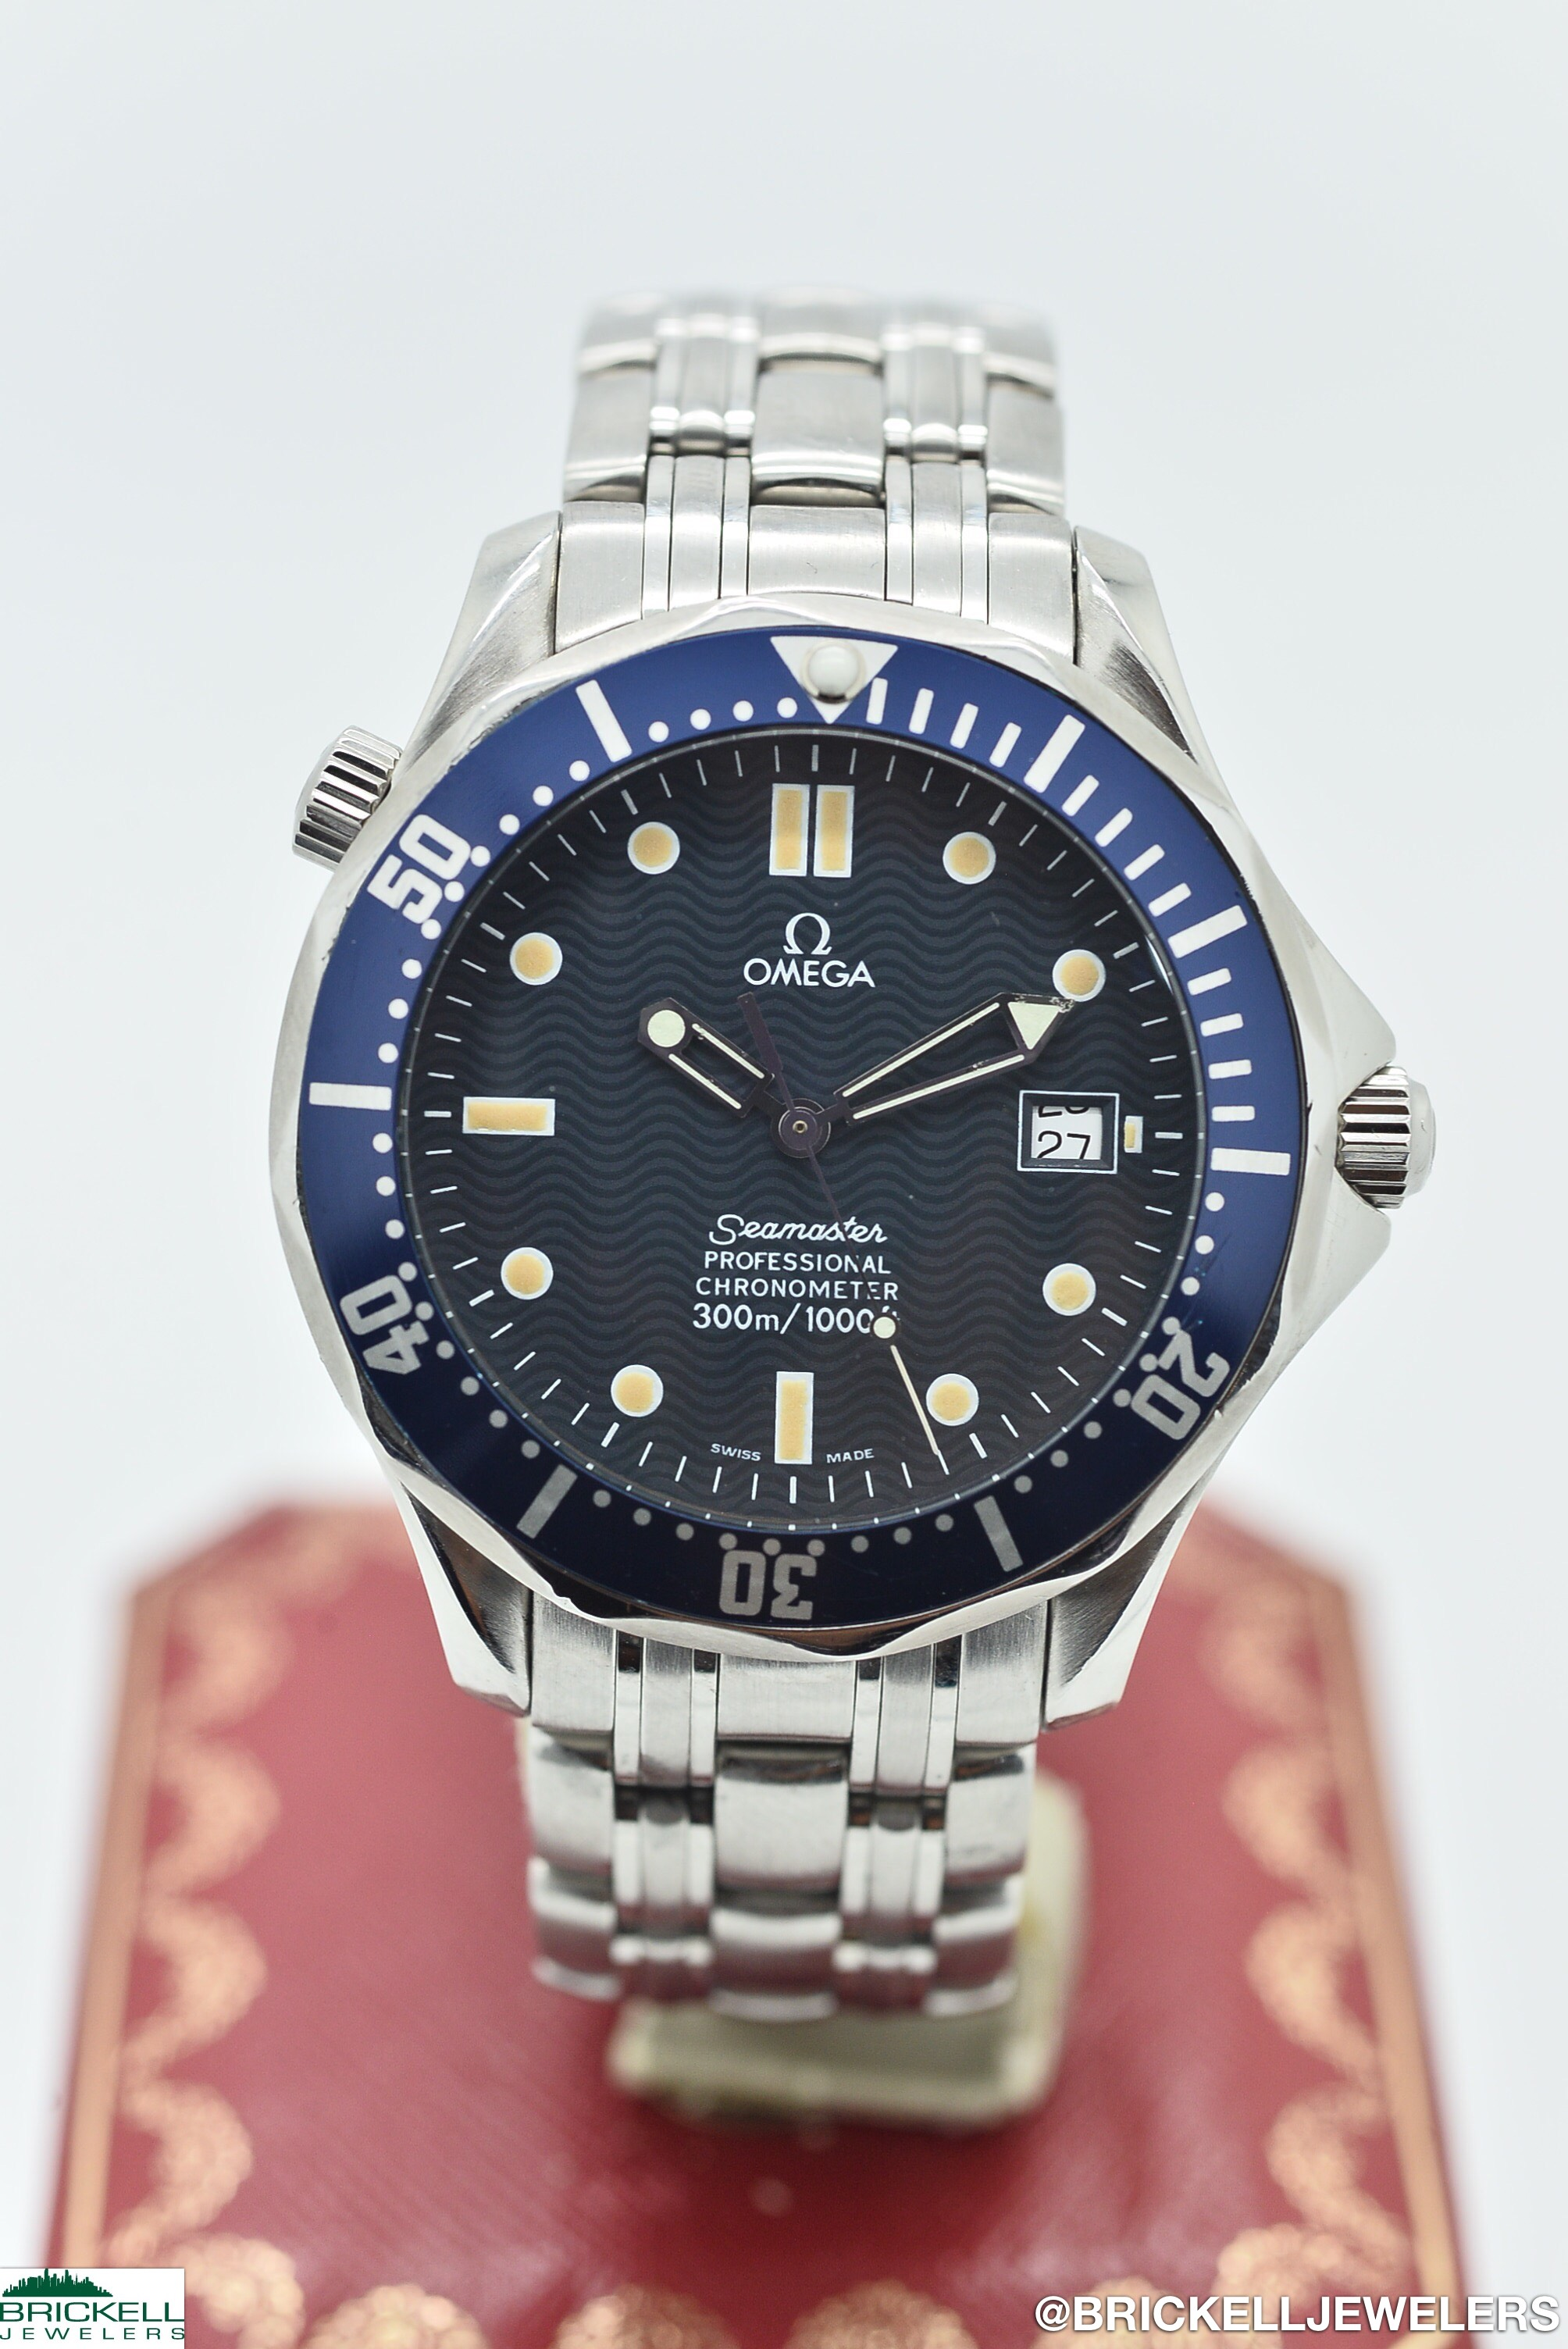 OMEGA	SEAMASTER PROFESSIONAL 300M	168 1603, 368 1603	BLUE					Stainless Steel			Mechanical (Automatic)	WATCH